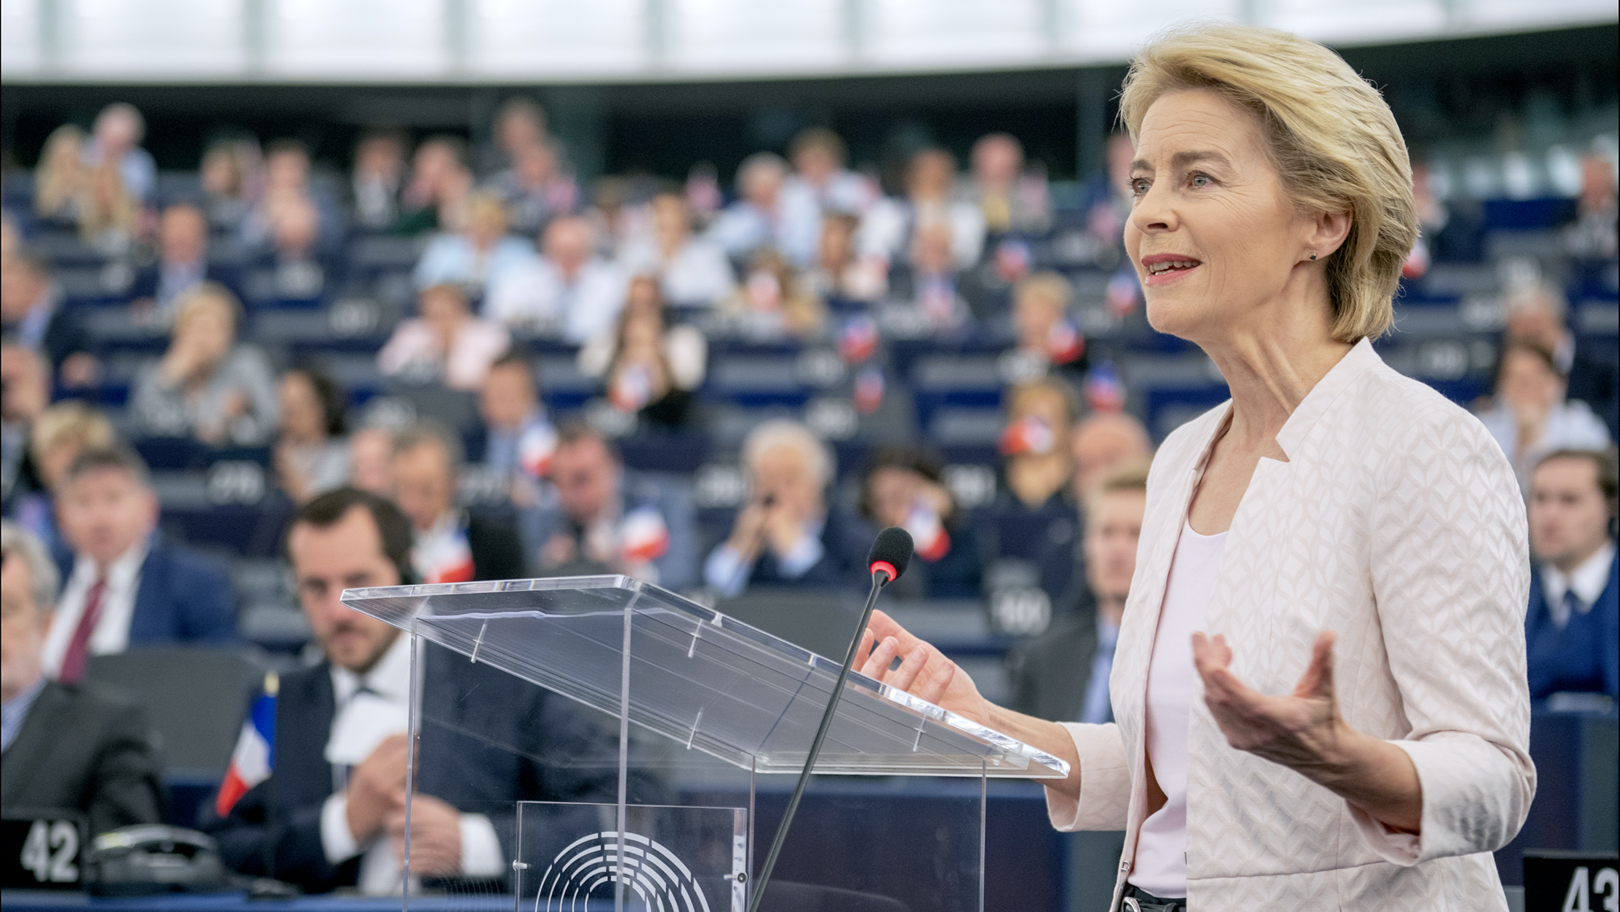 European Green Deal requires energy efficiency first to set new course for economic growth, climate protection and social inclusion